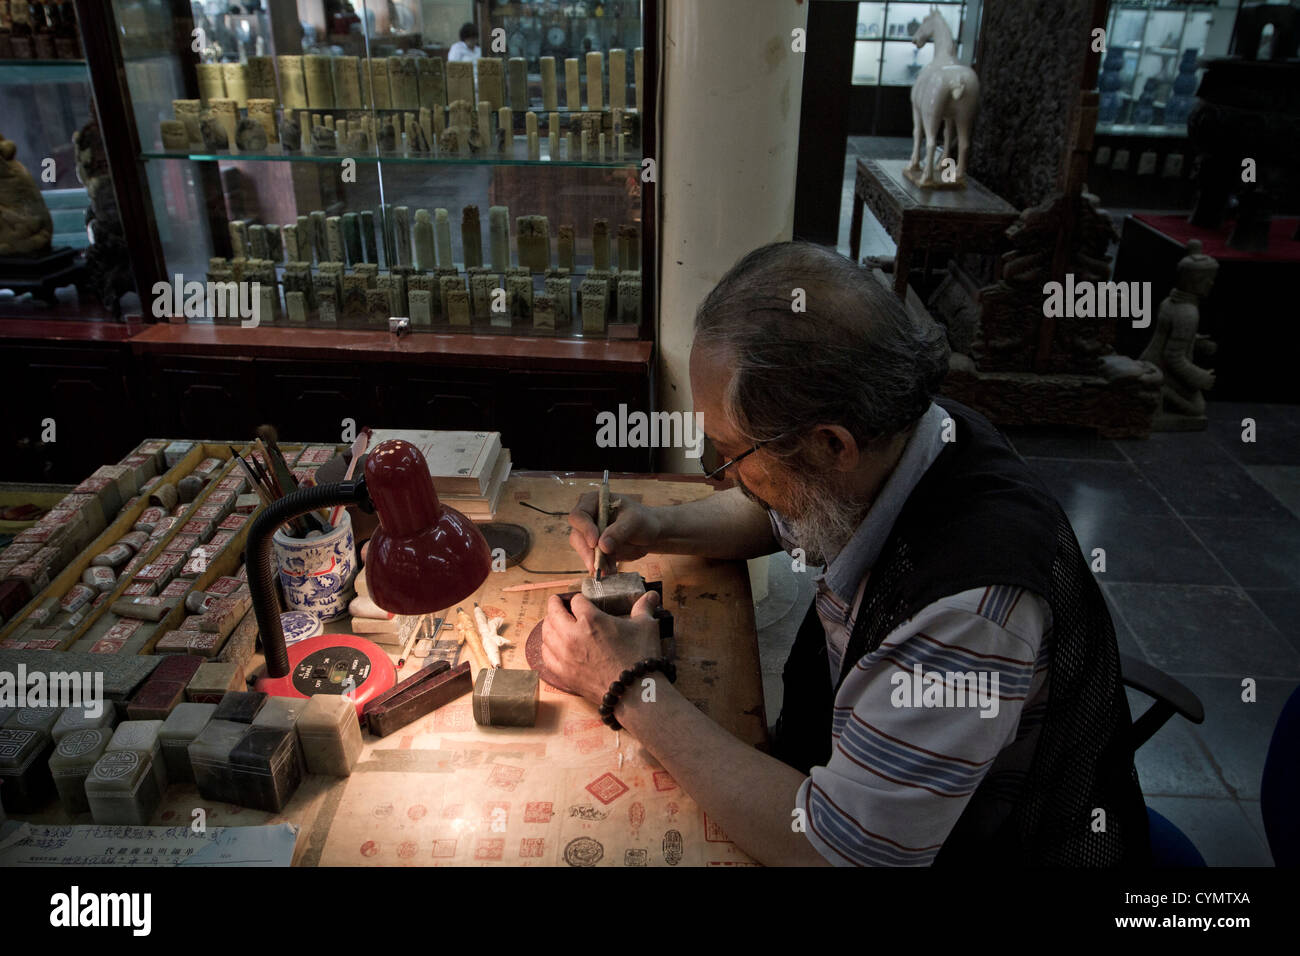 An engraver at work in a shop in a street in Liulichang, Beiijing China. - Stock Image